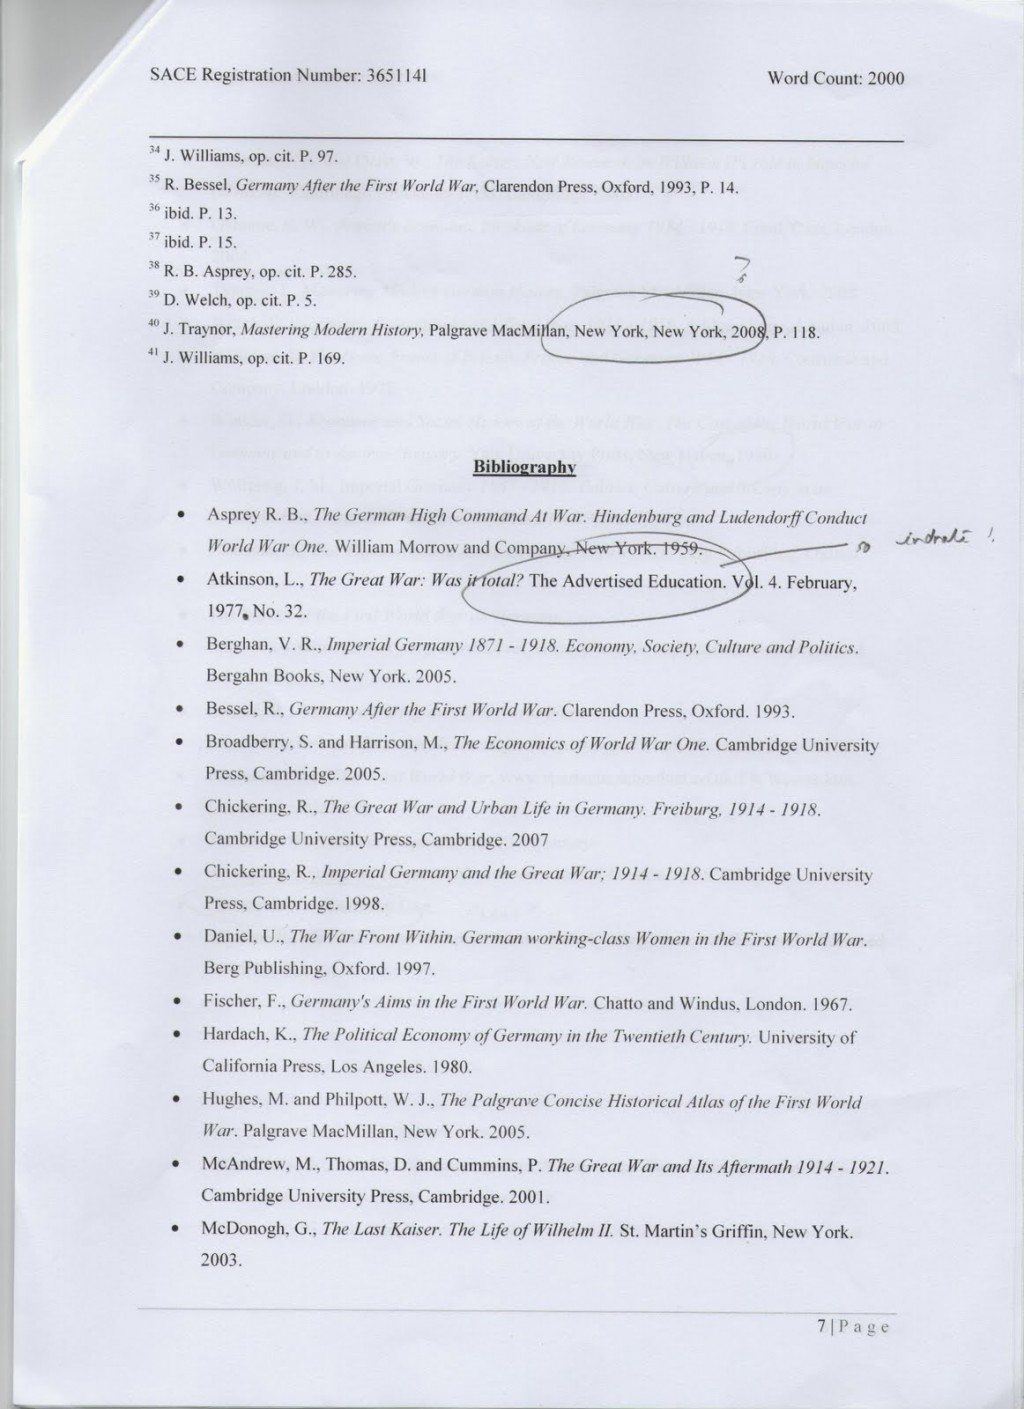 009 Endnotes2bbibliography1 Essay Example Dreaded Uchicago Prompts 2015 College Examples Supplement Tips Large